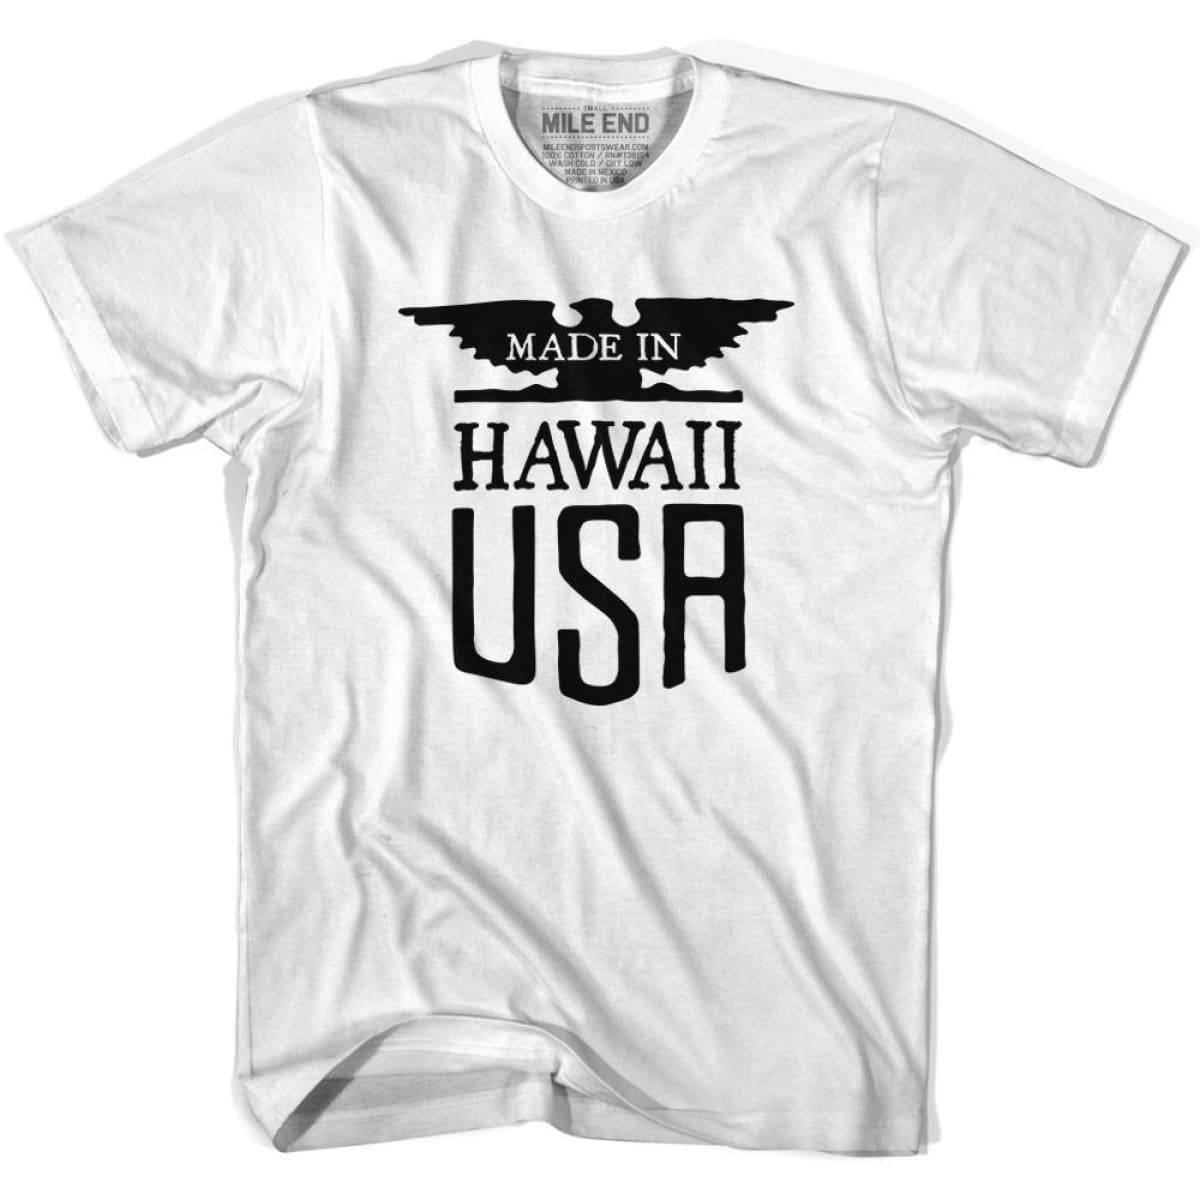 Hawaii Vintage Eagle T-shirt - White / Youth X-Small - Made in Eagle